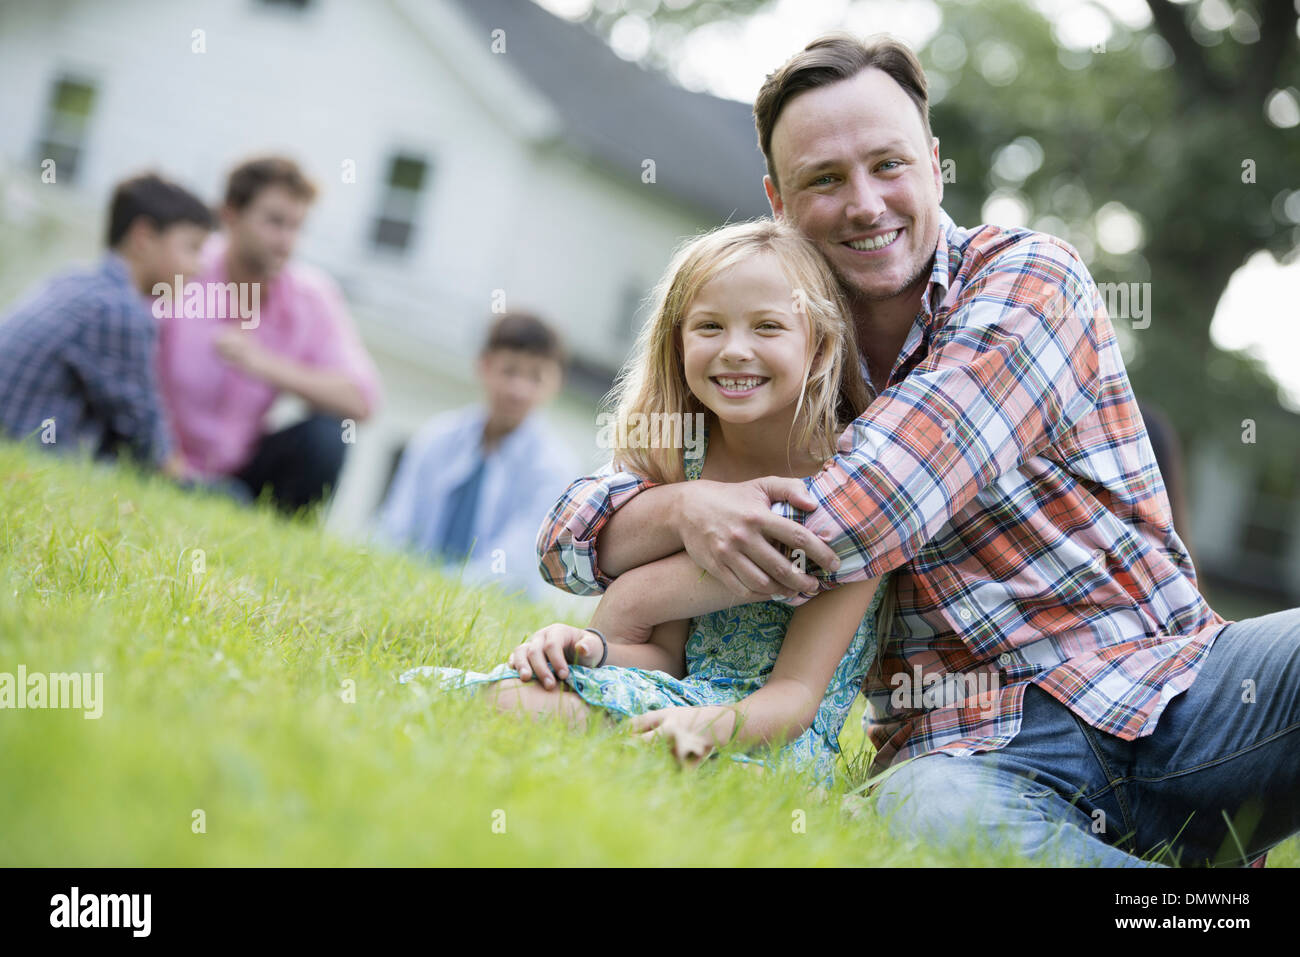 A father and daughter at a summer party sitting on  grass. Stock Photo